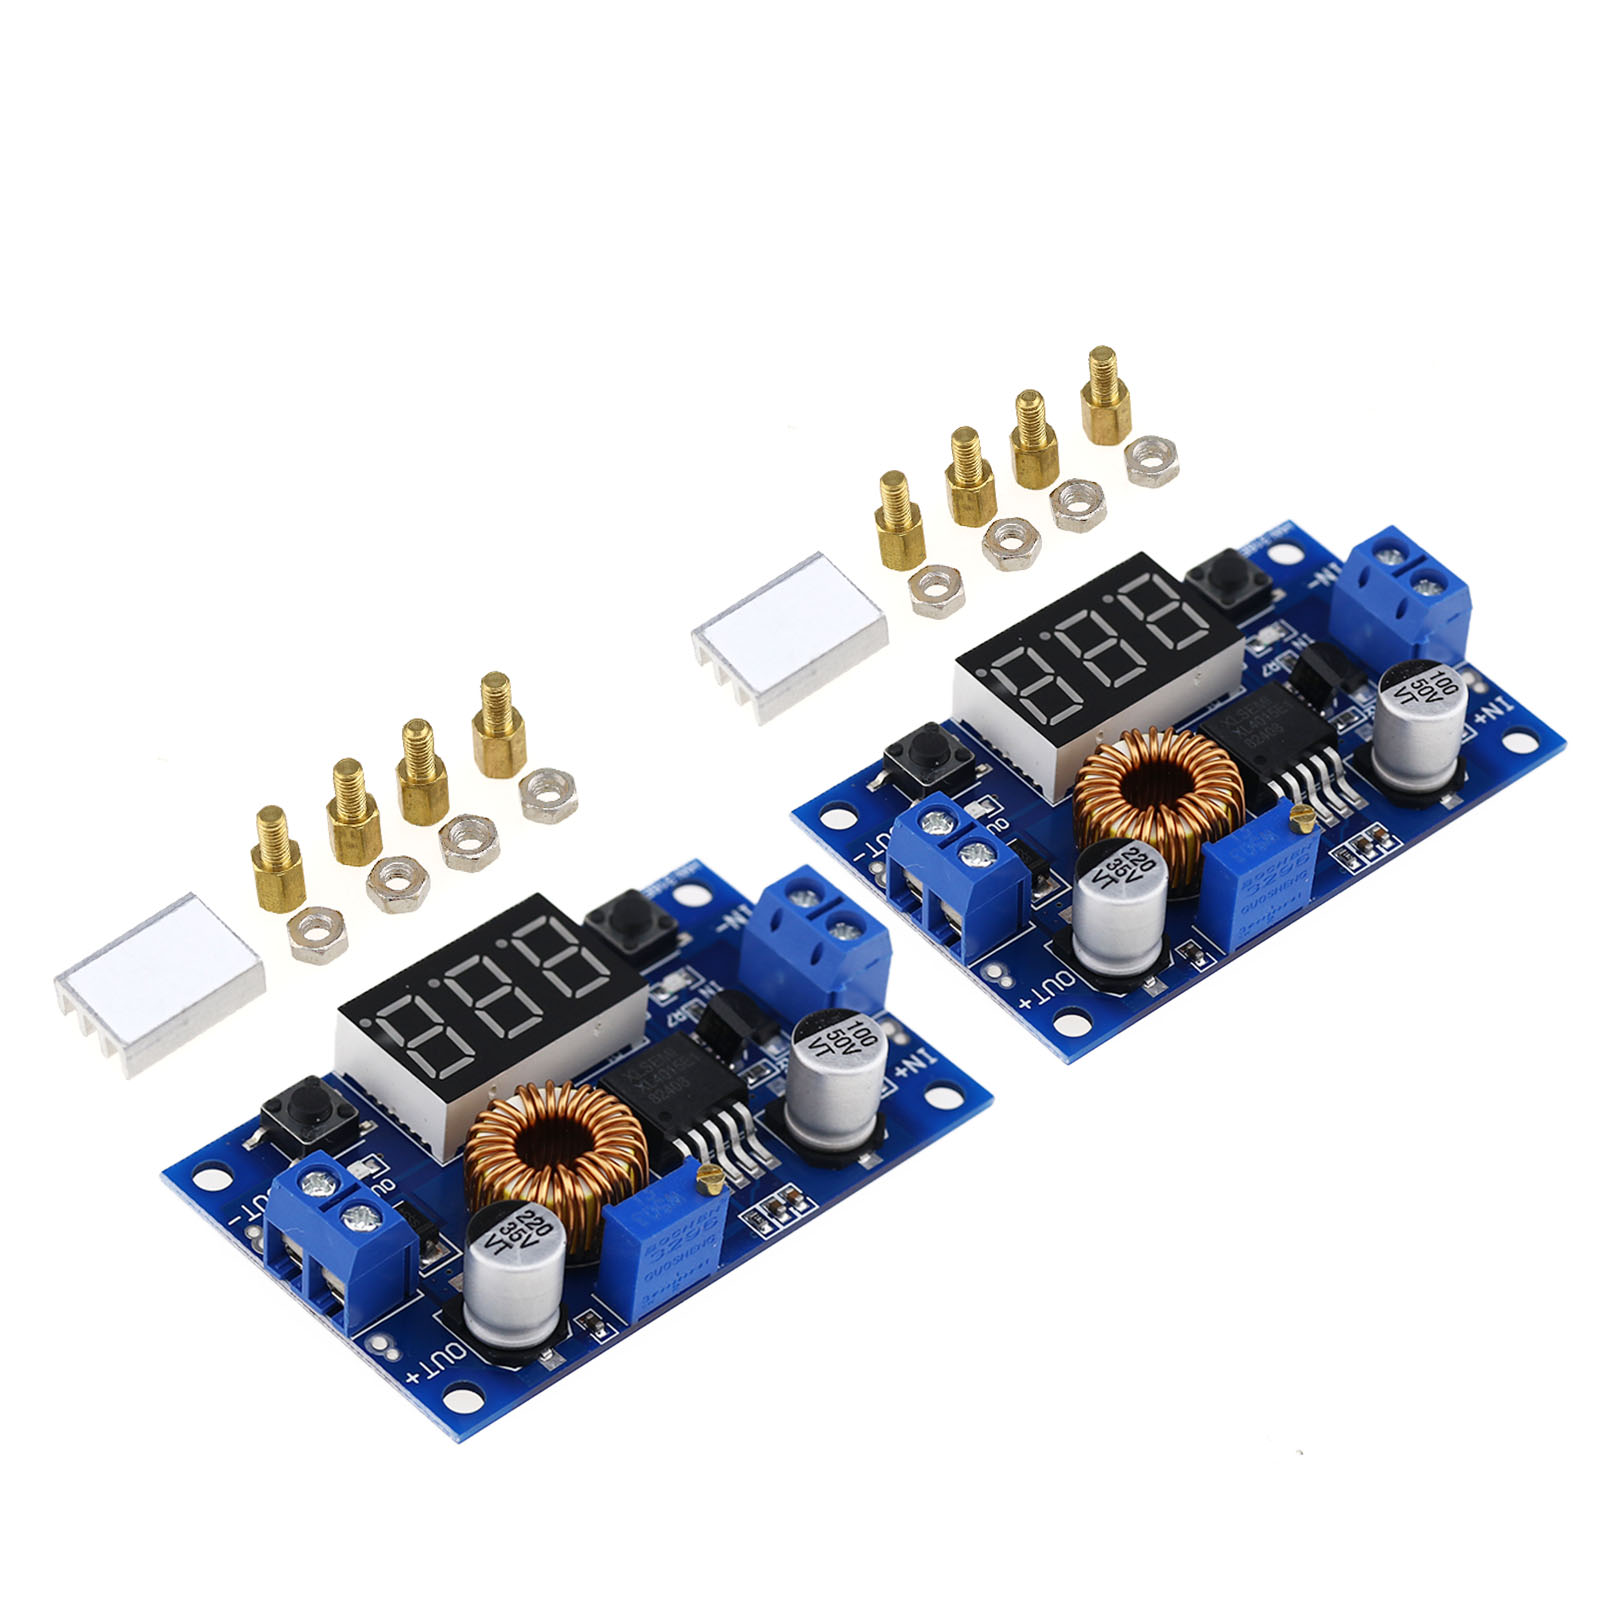 5A LED Buck Converter DC-DC Step-Down Converter Volt Meter To Monitor the Supply